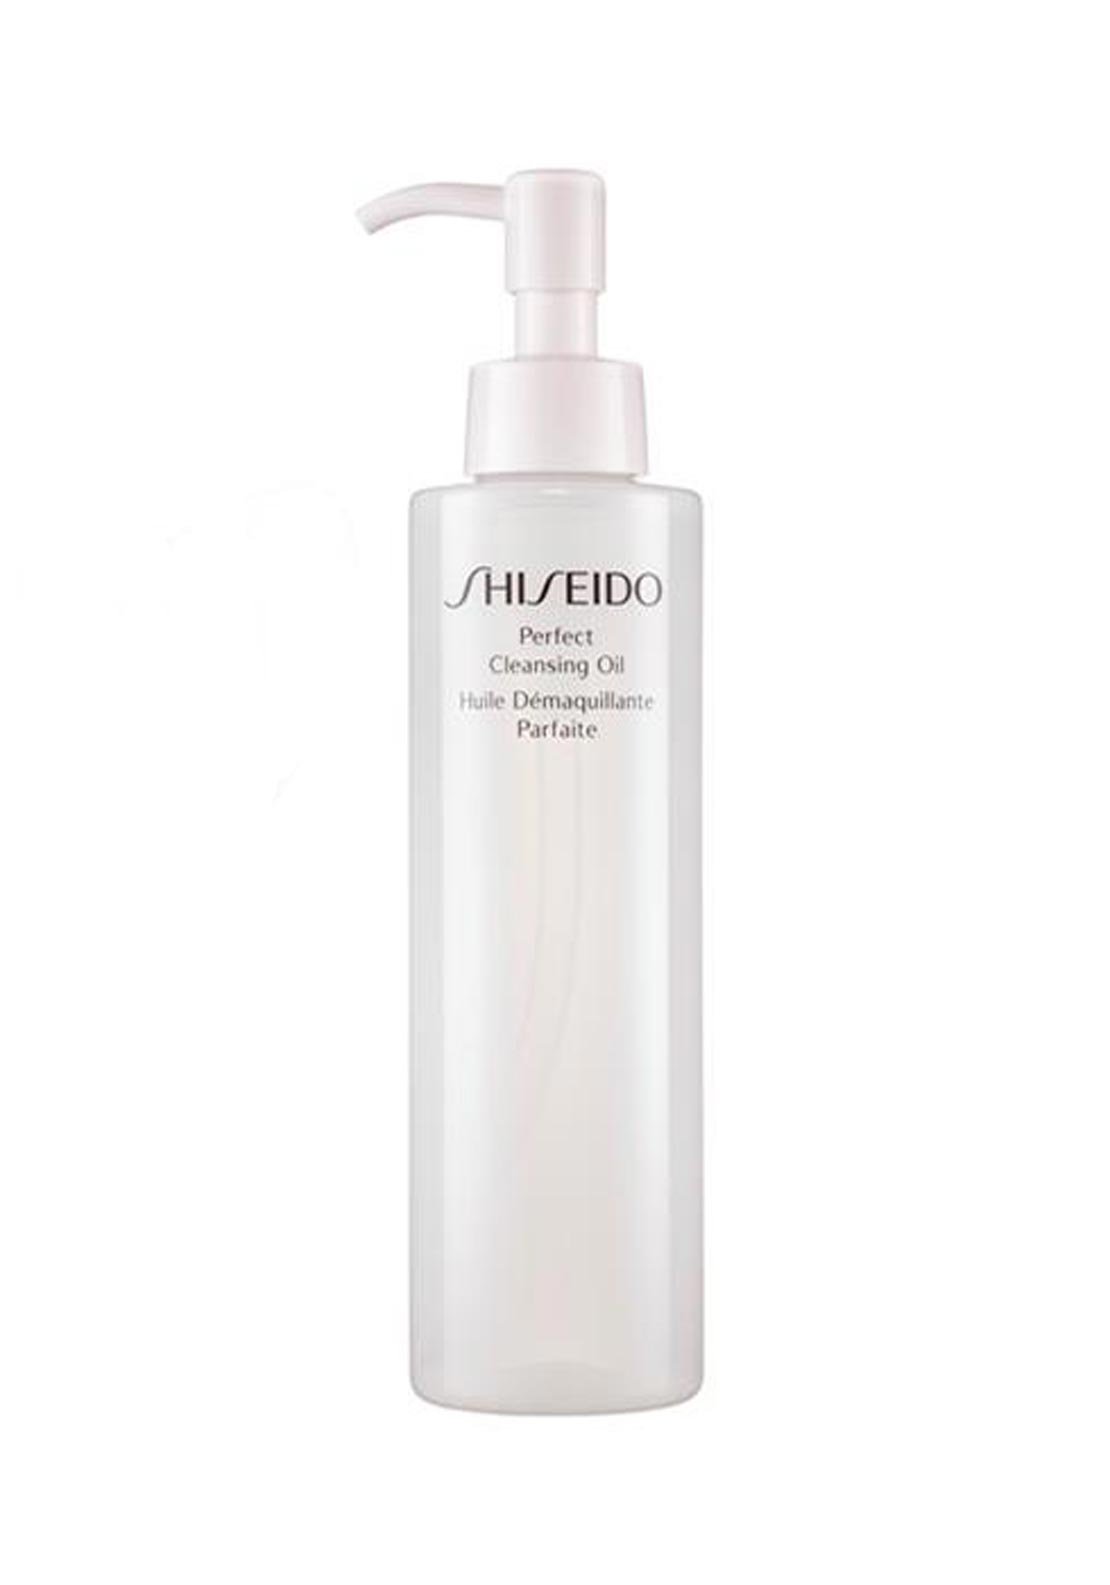 Shiseido Perfect Cleaning Oil, 180ml